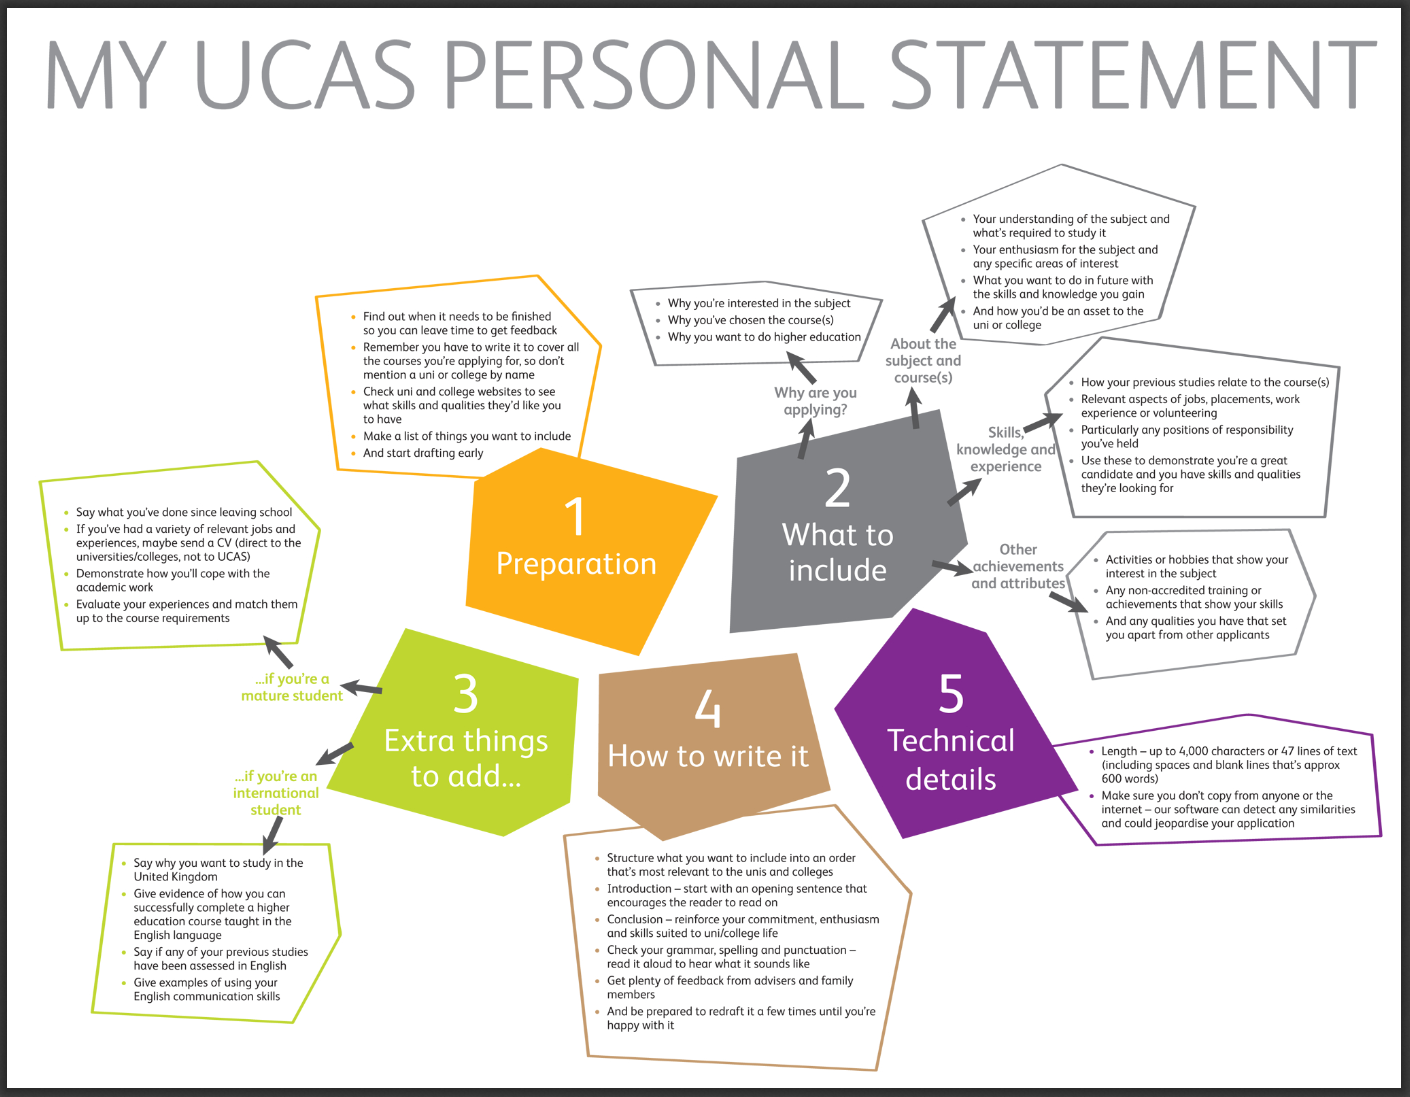 Law Personal Statement Examples | Studential com